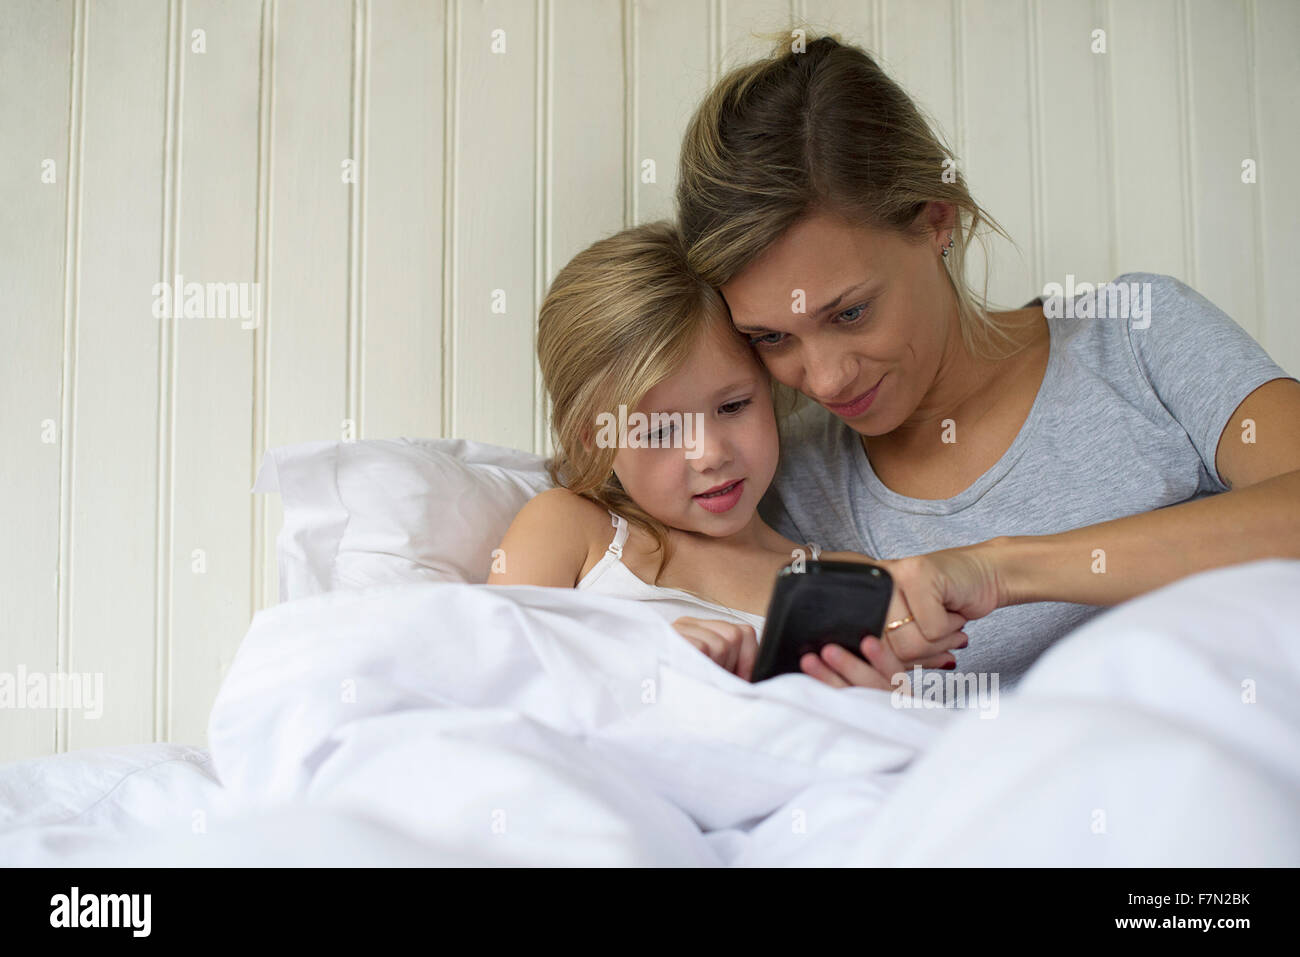 Mother and daughter using smartphone together - Stock Image